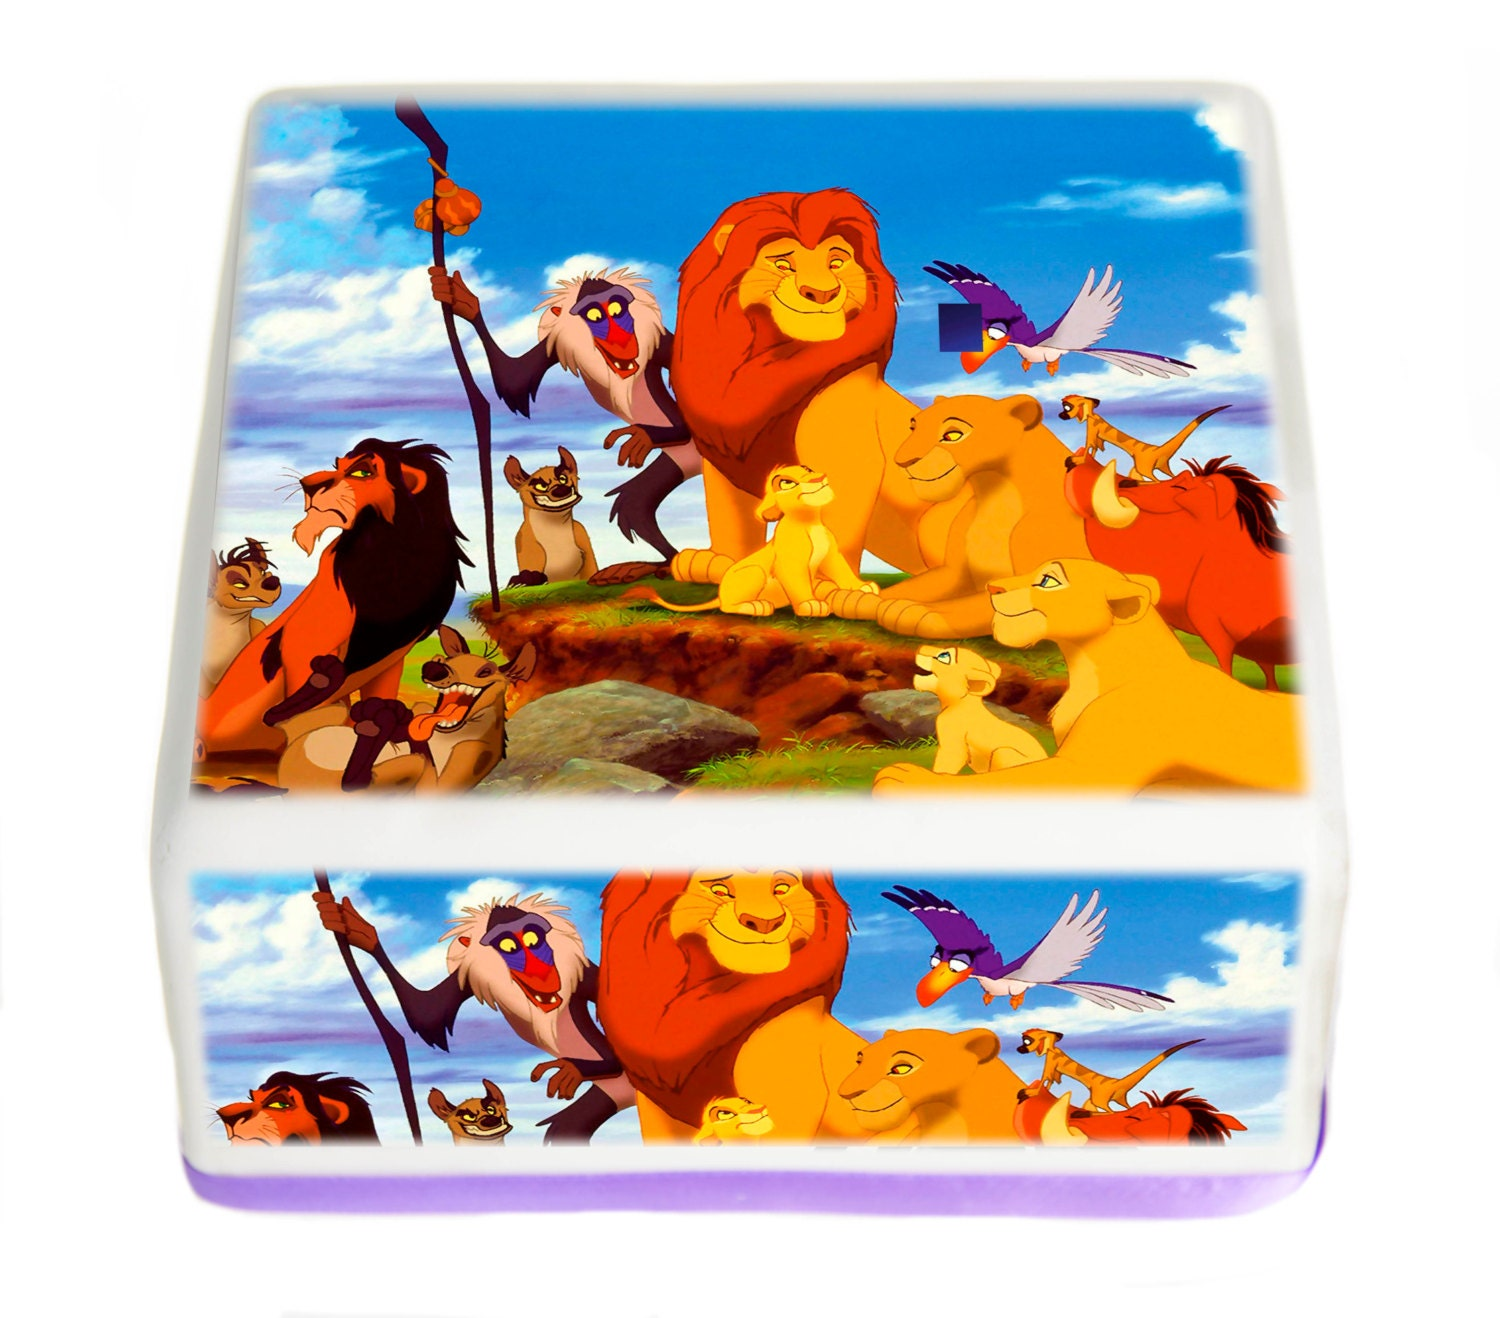 Edible Cake Images Lion King : Lion King Edible Square cake topper 7.5 Inch by ...